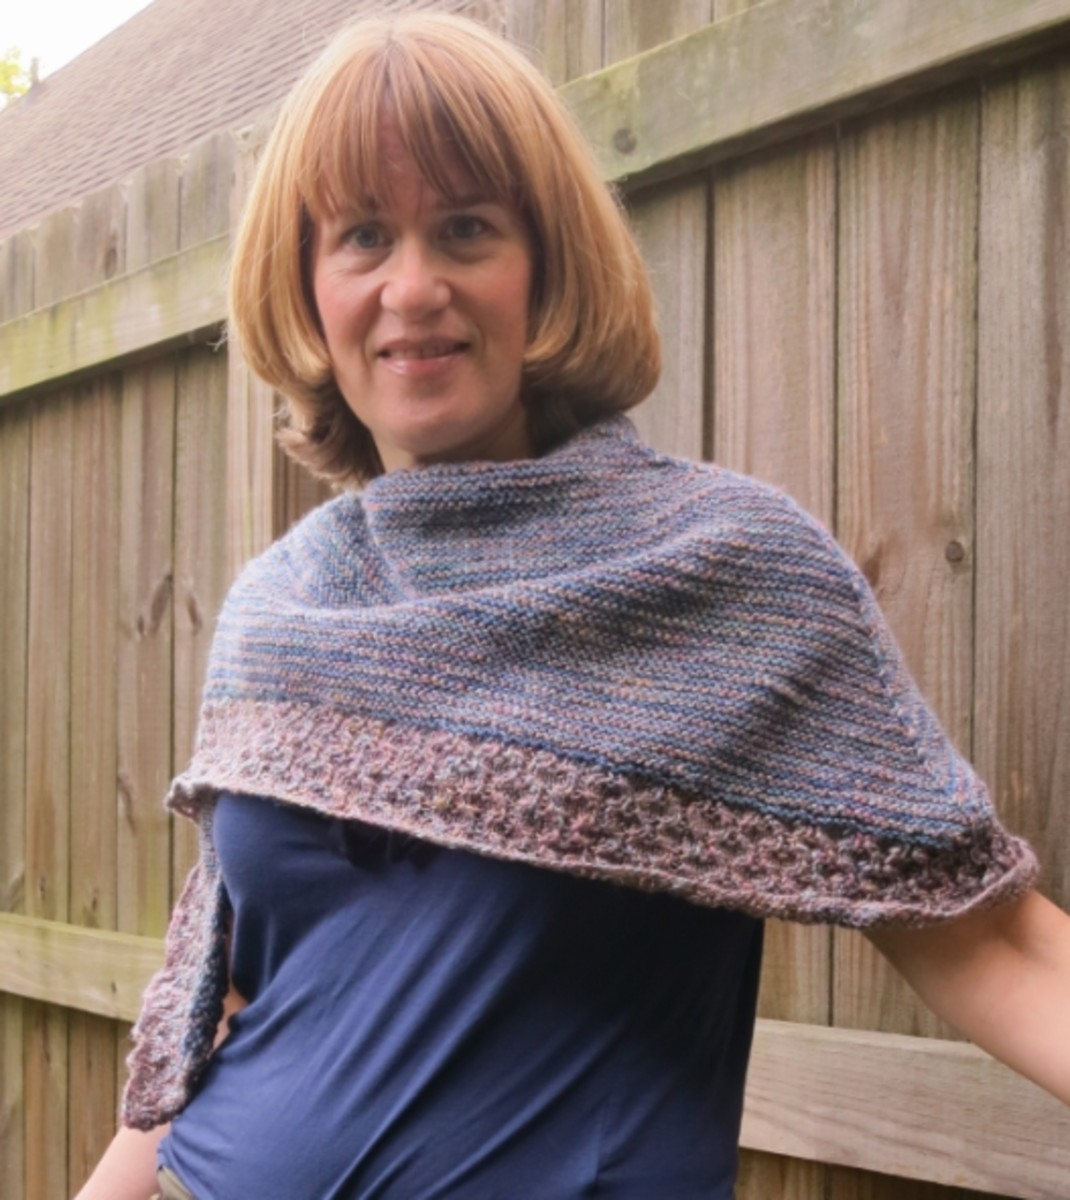 knitted textured shawl pattern